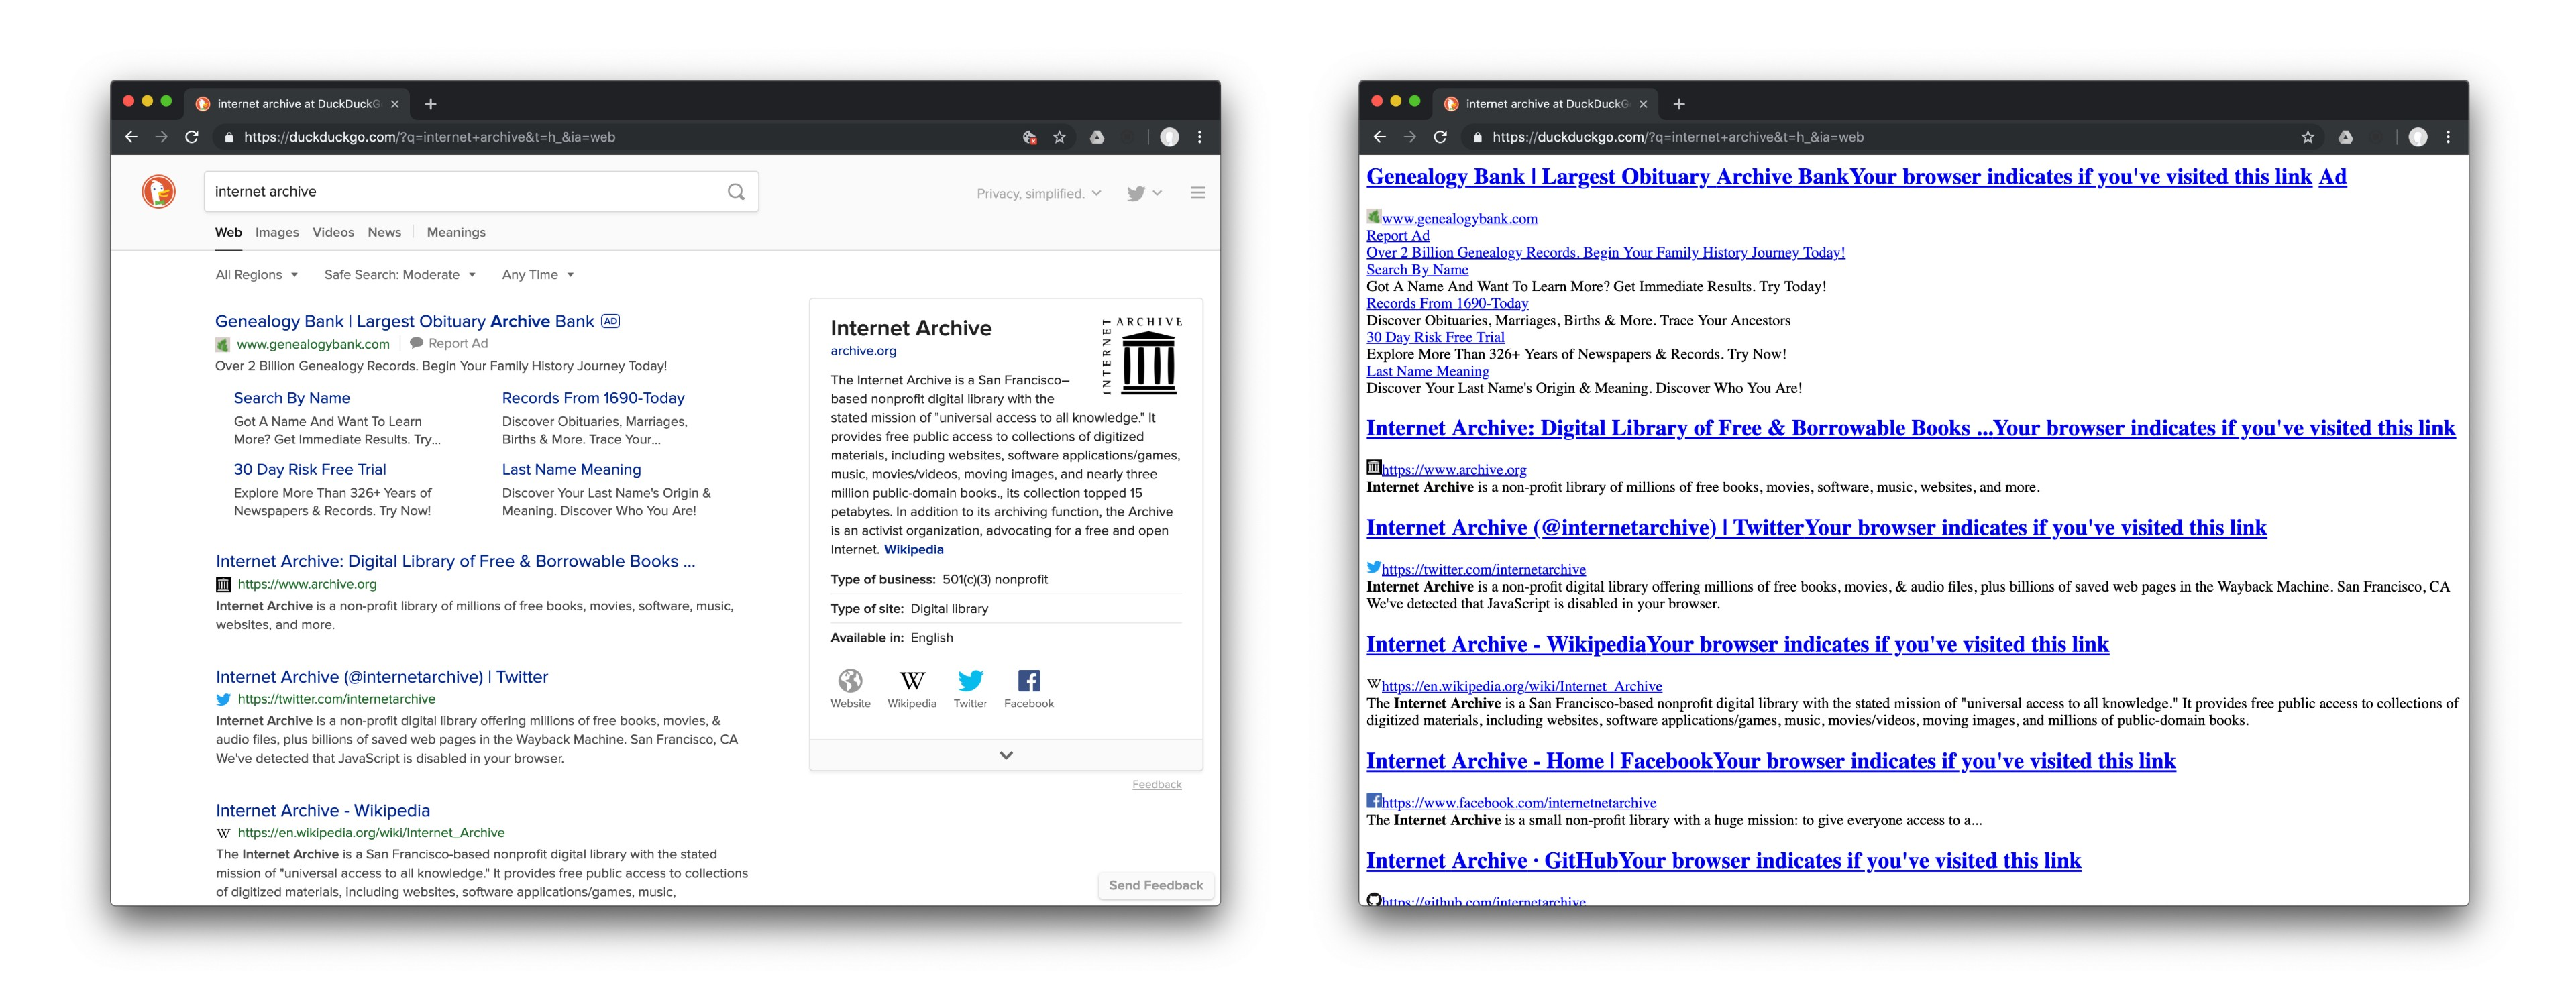 Comparison of search results page with and without CSS. Extra text appears next to titles in the non-CSS version.